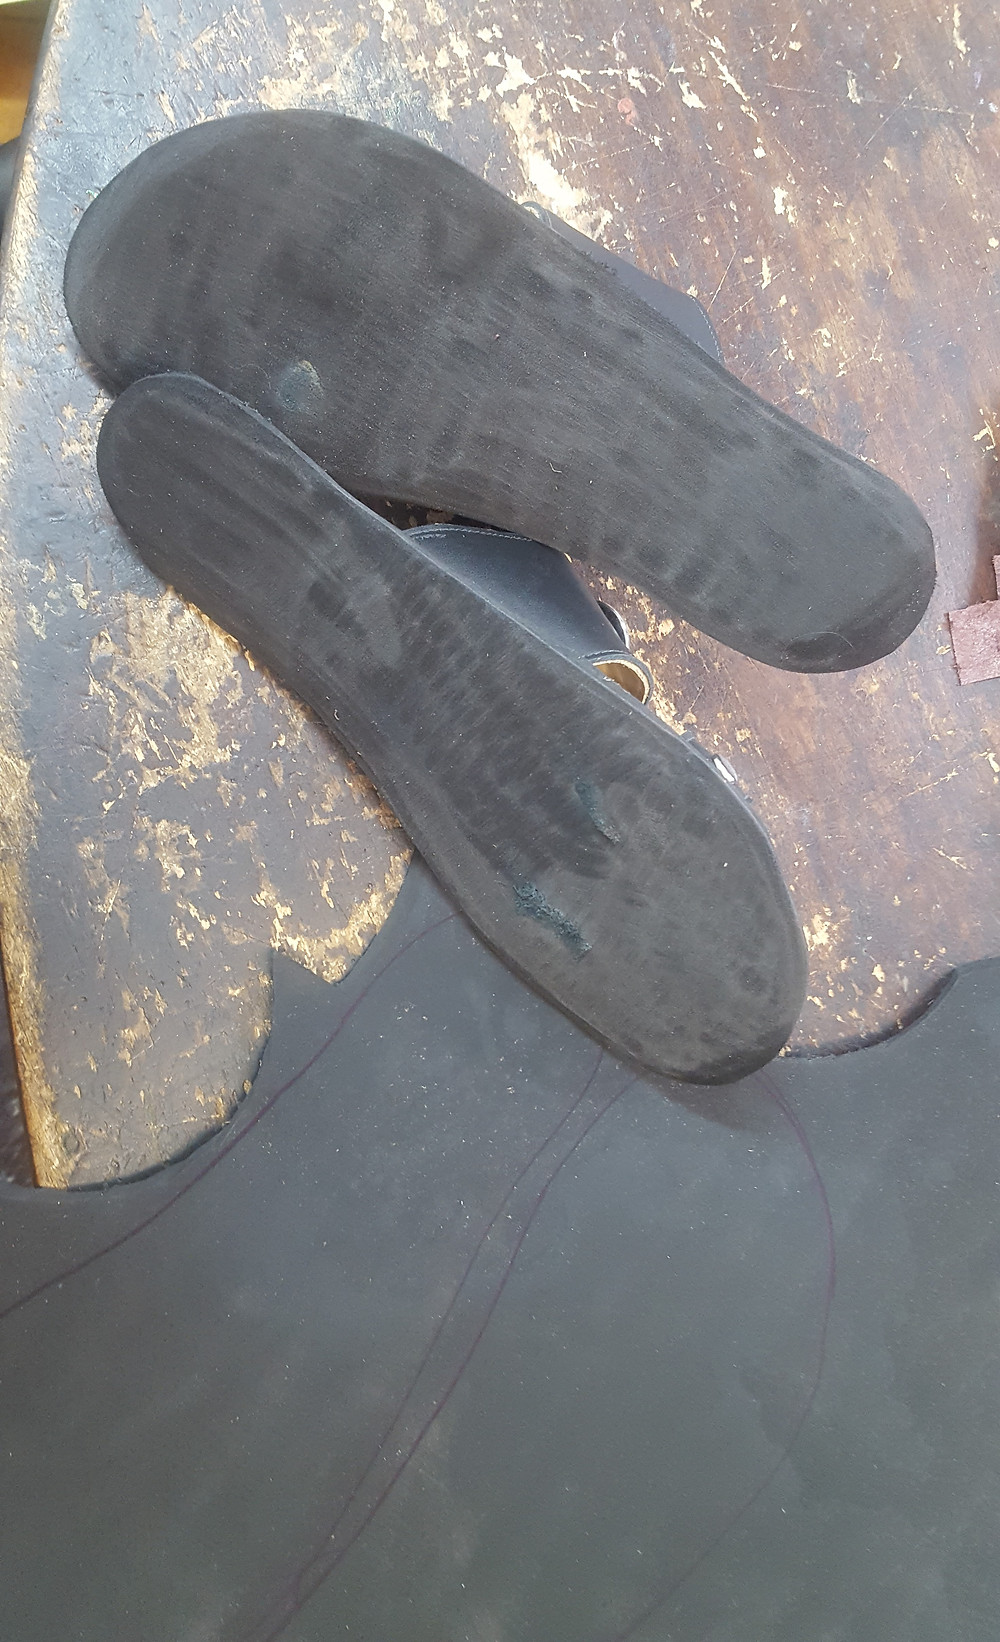 A layer of 2 mm soft sole has been glued to the bottom of the sandal and sanded flat